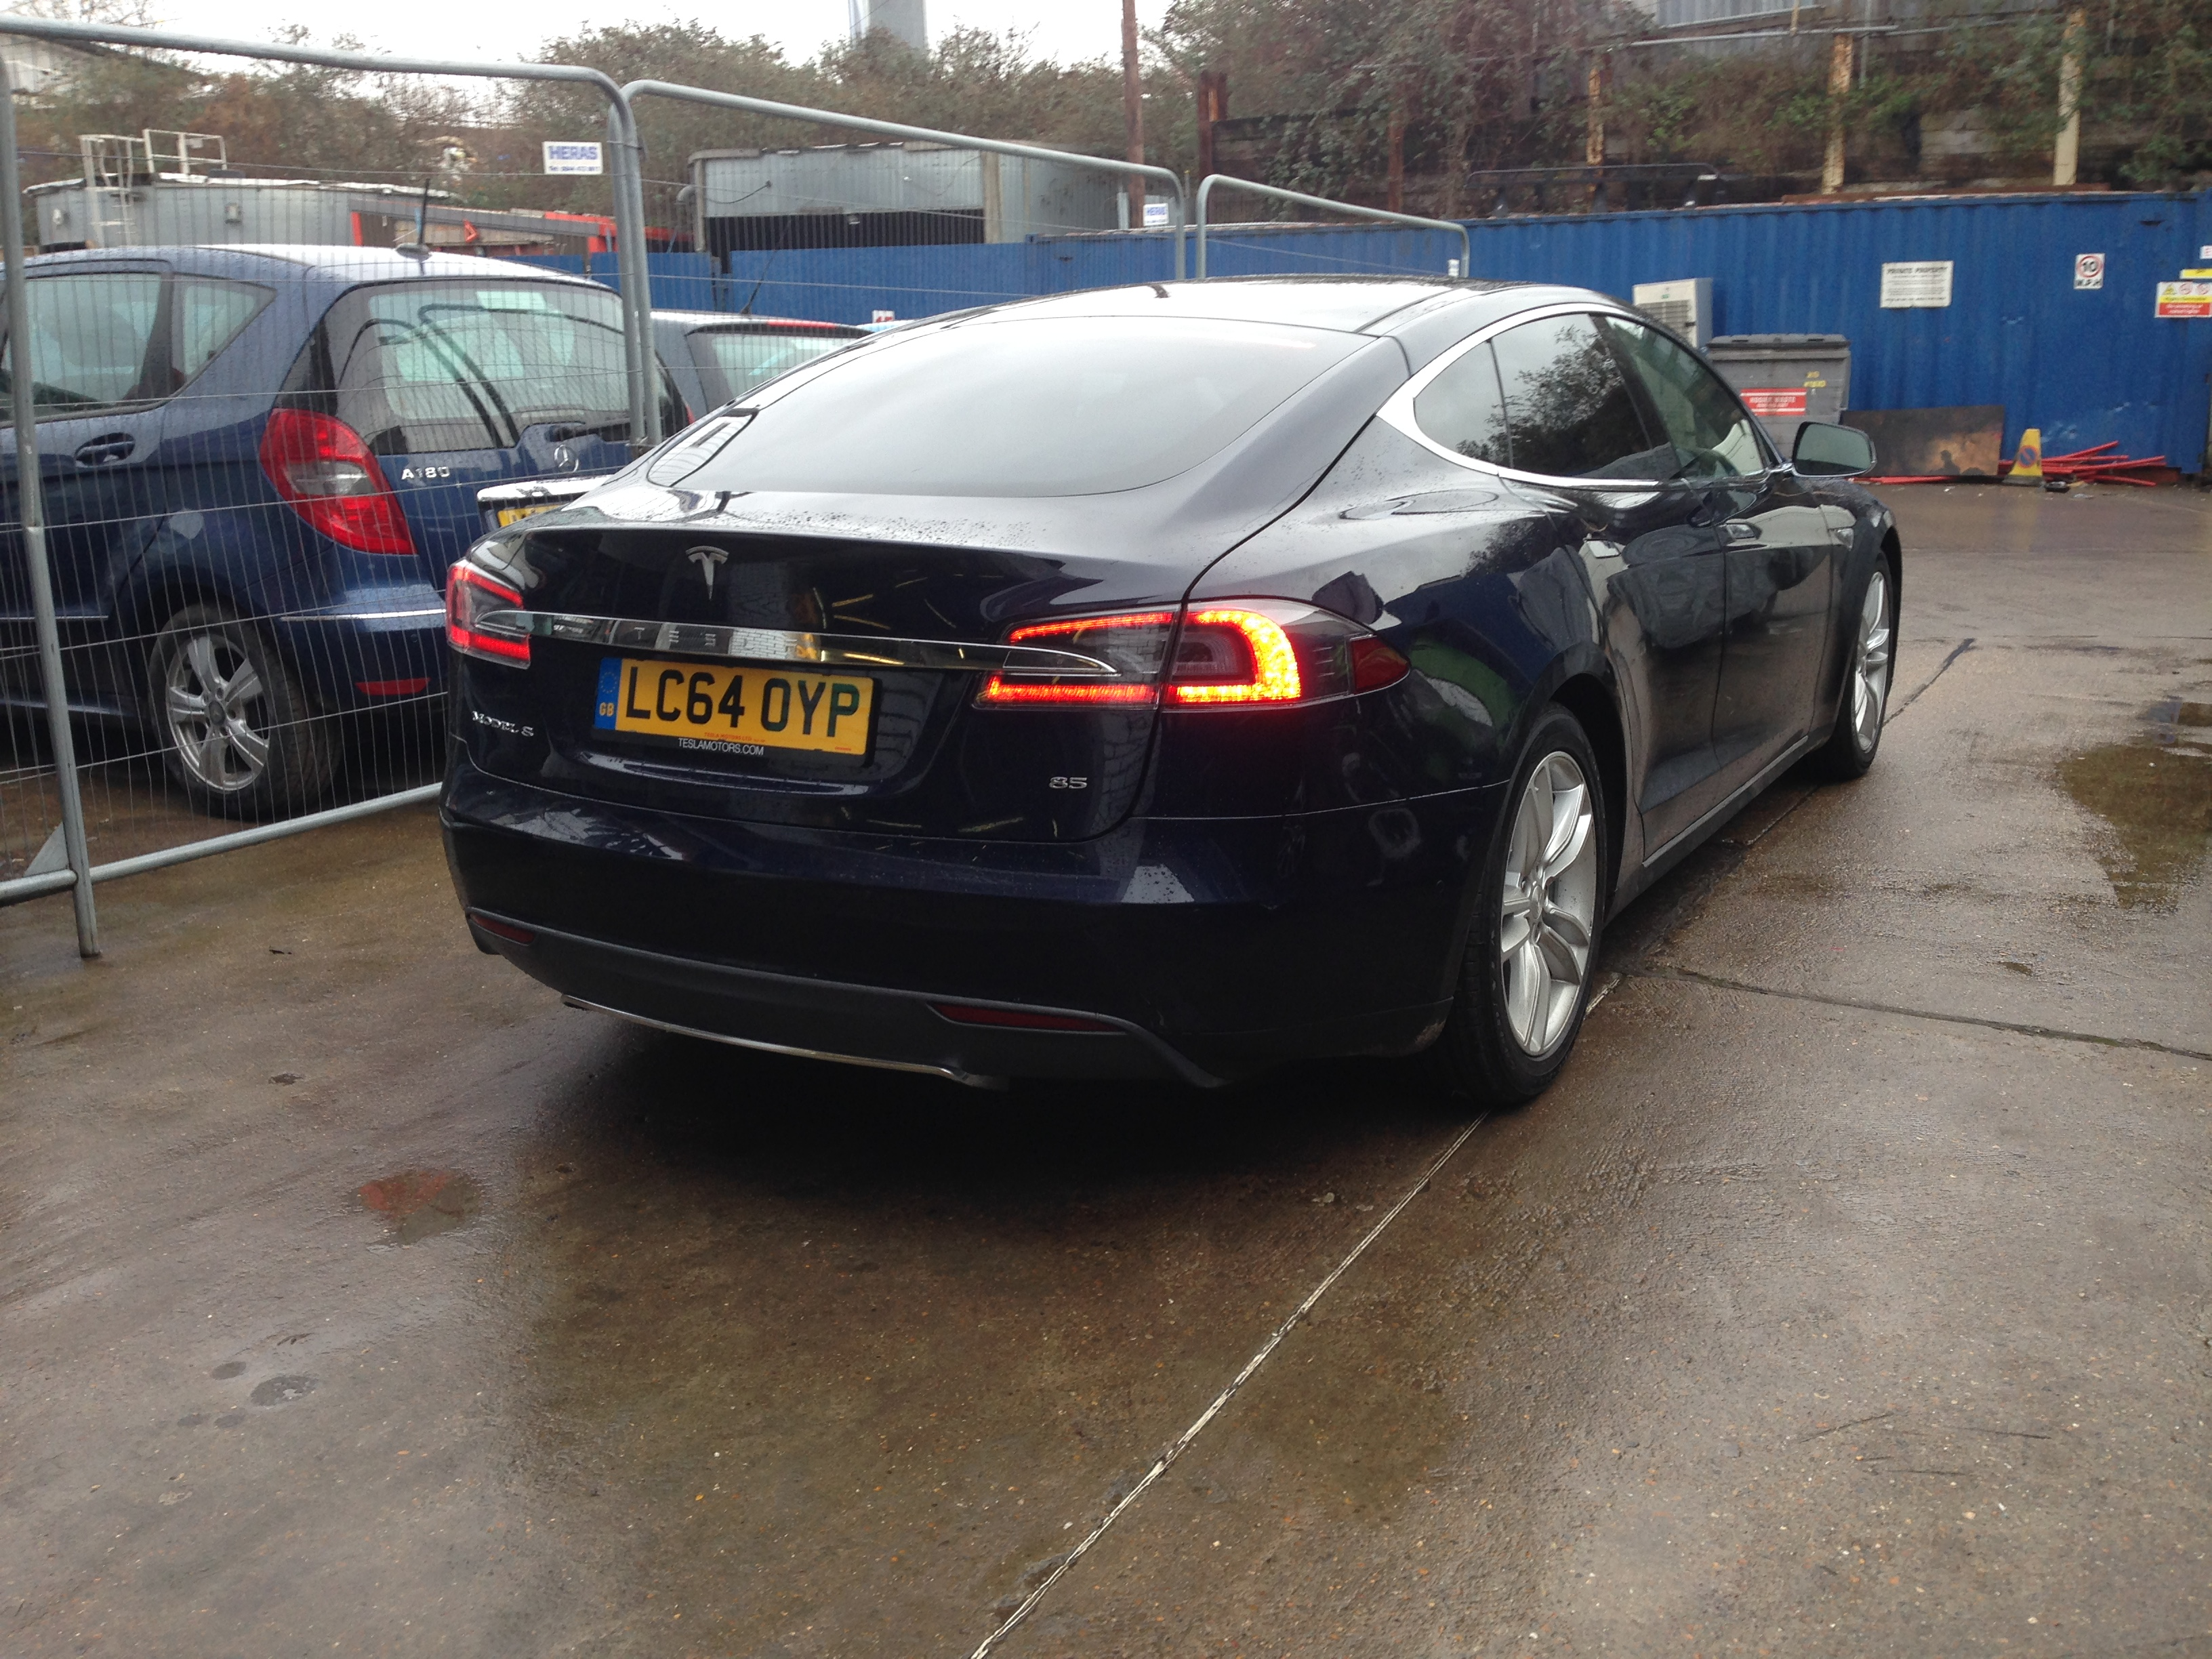 #telsa #electriccar #car #windowtints #windowtintinglondon